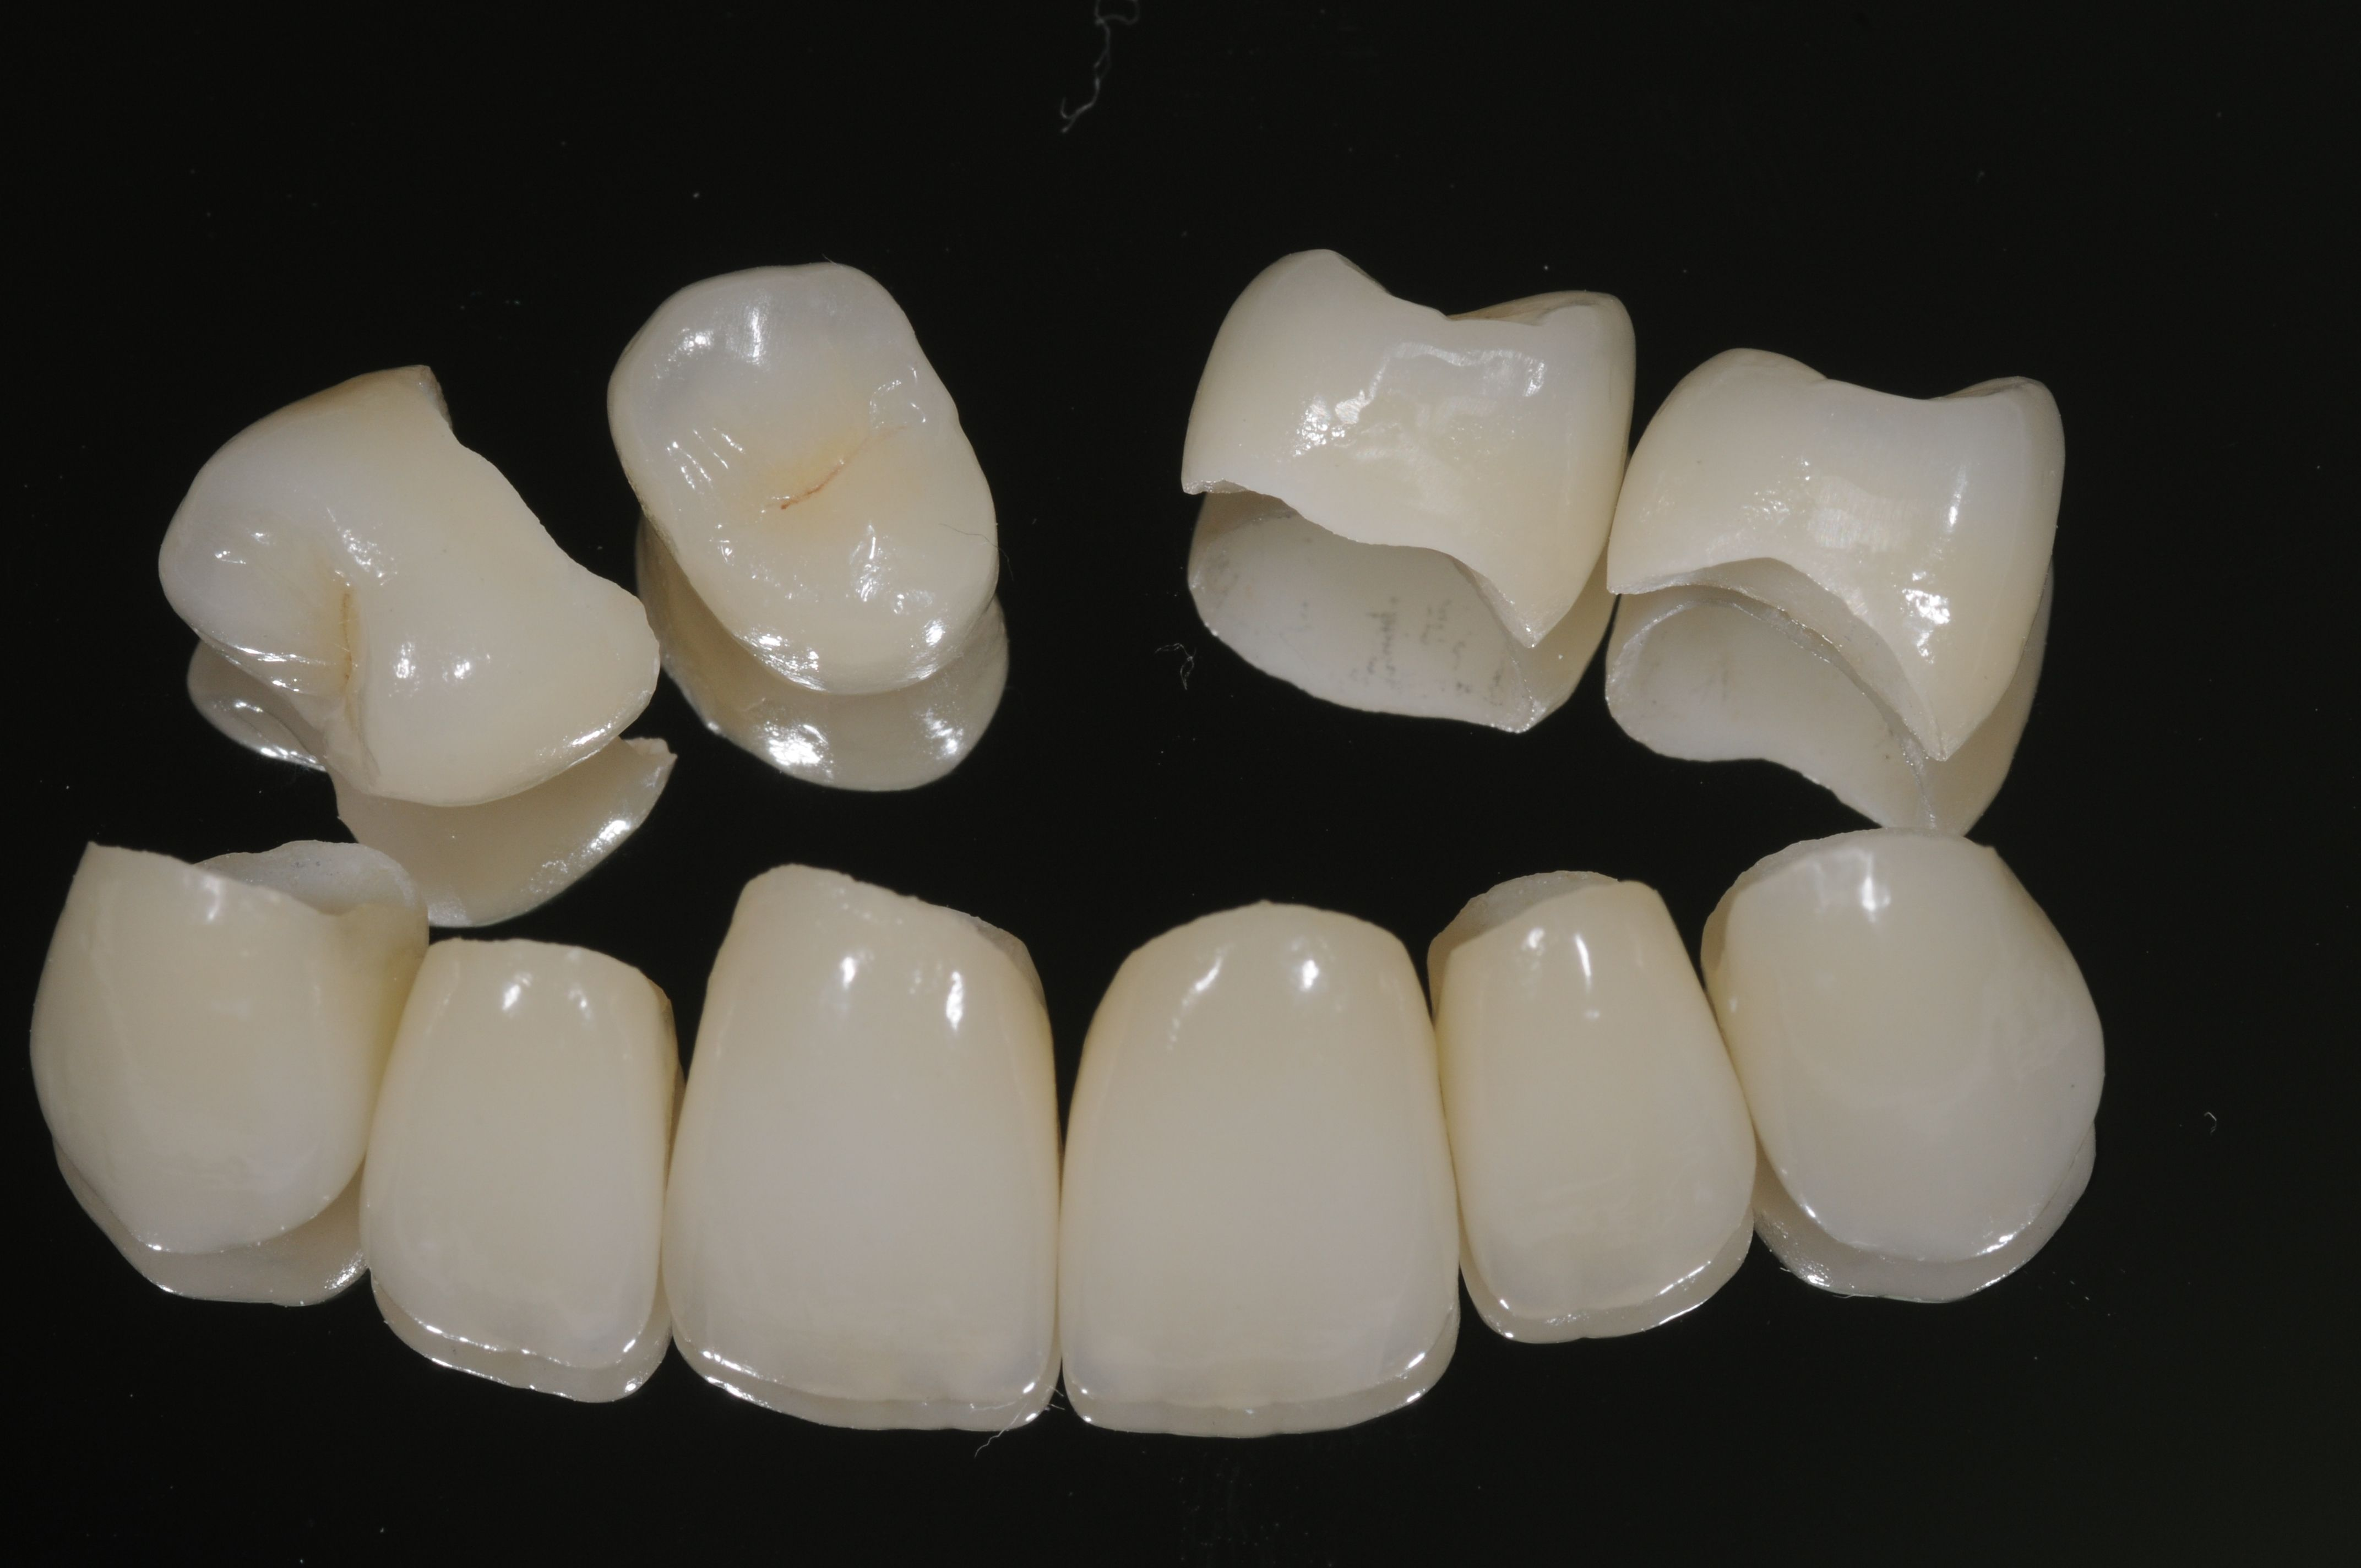 An example of high quality porcelain